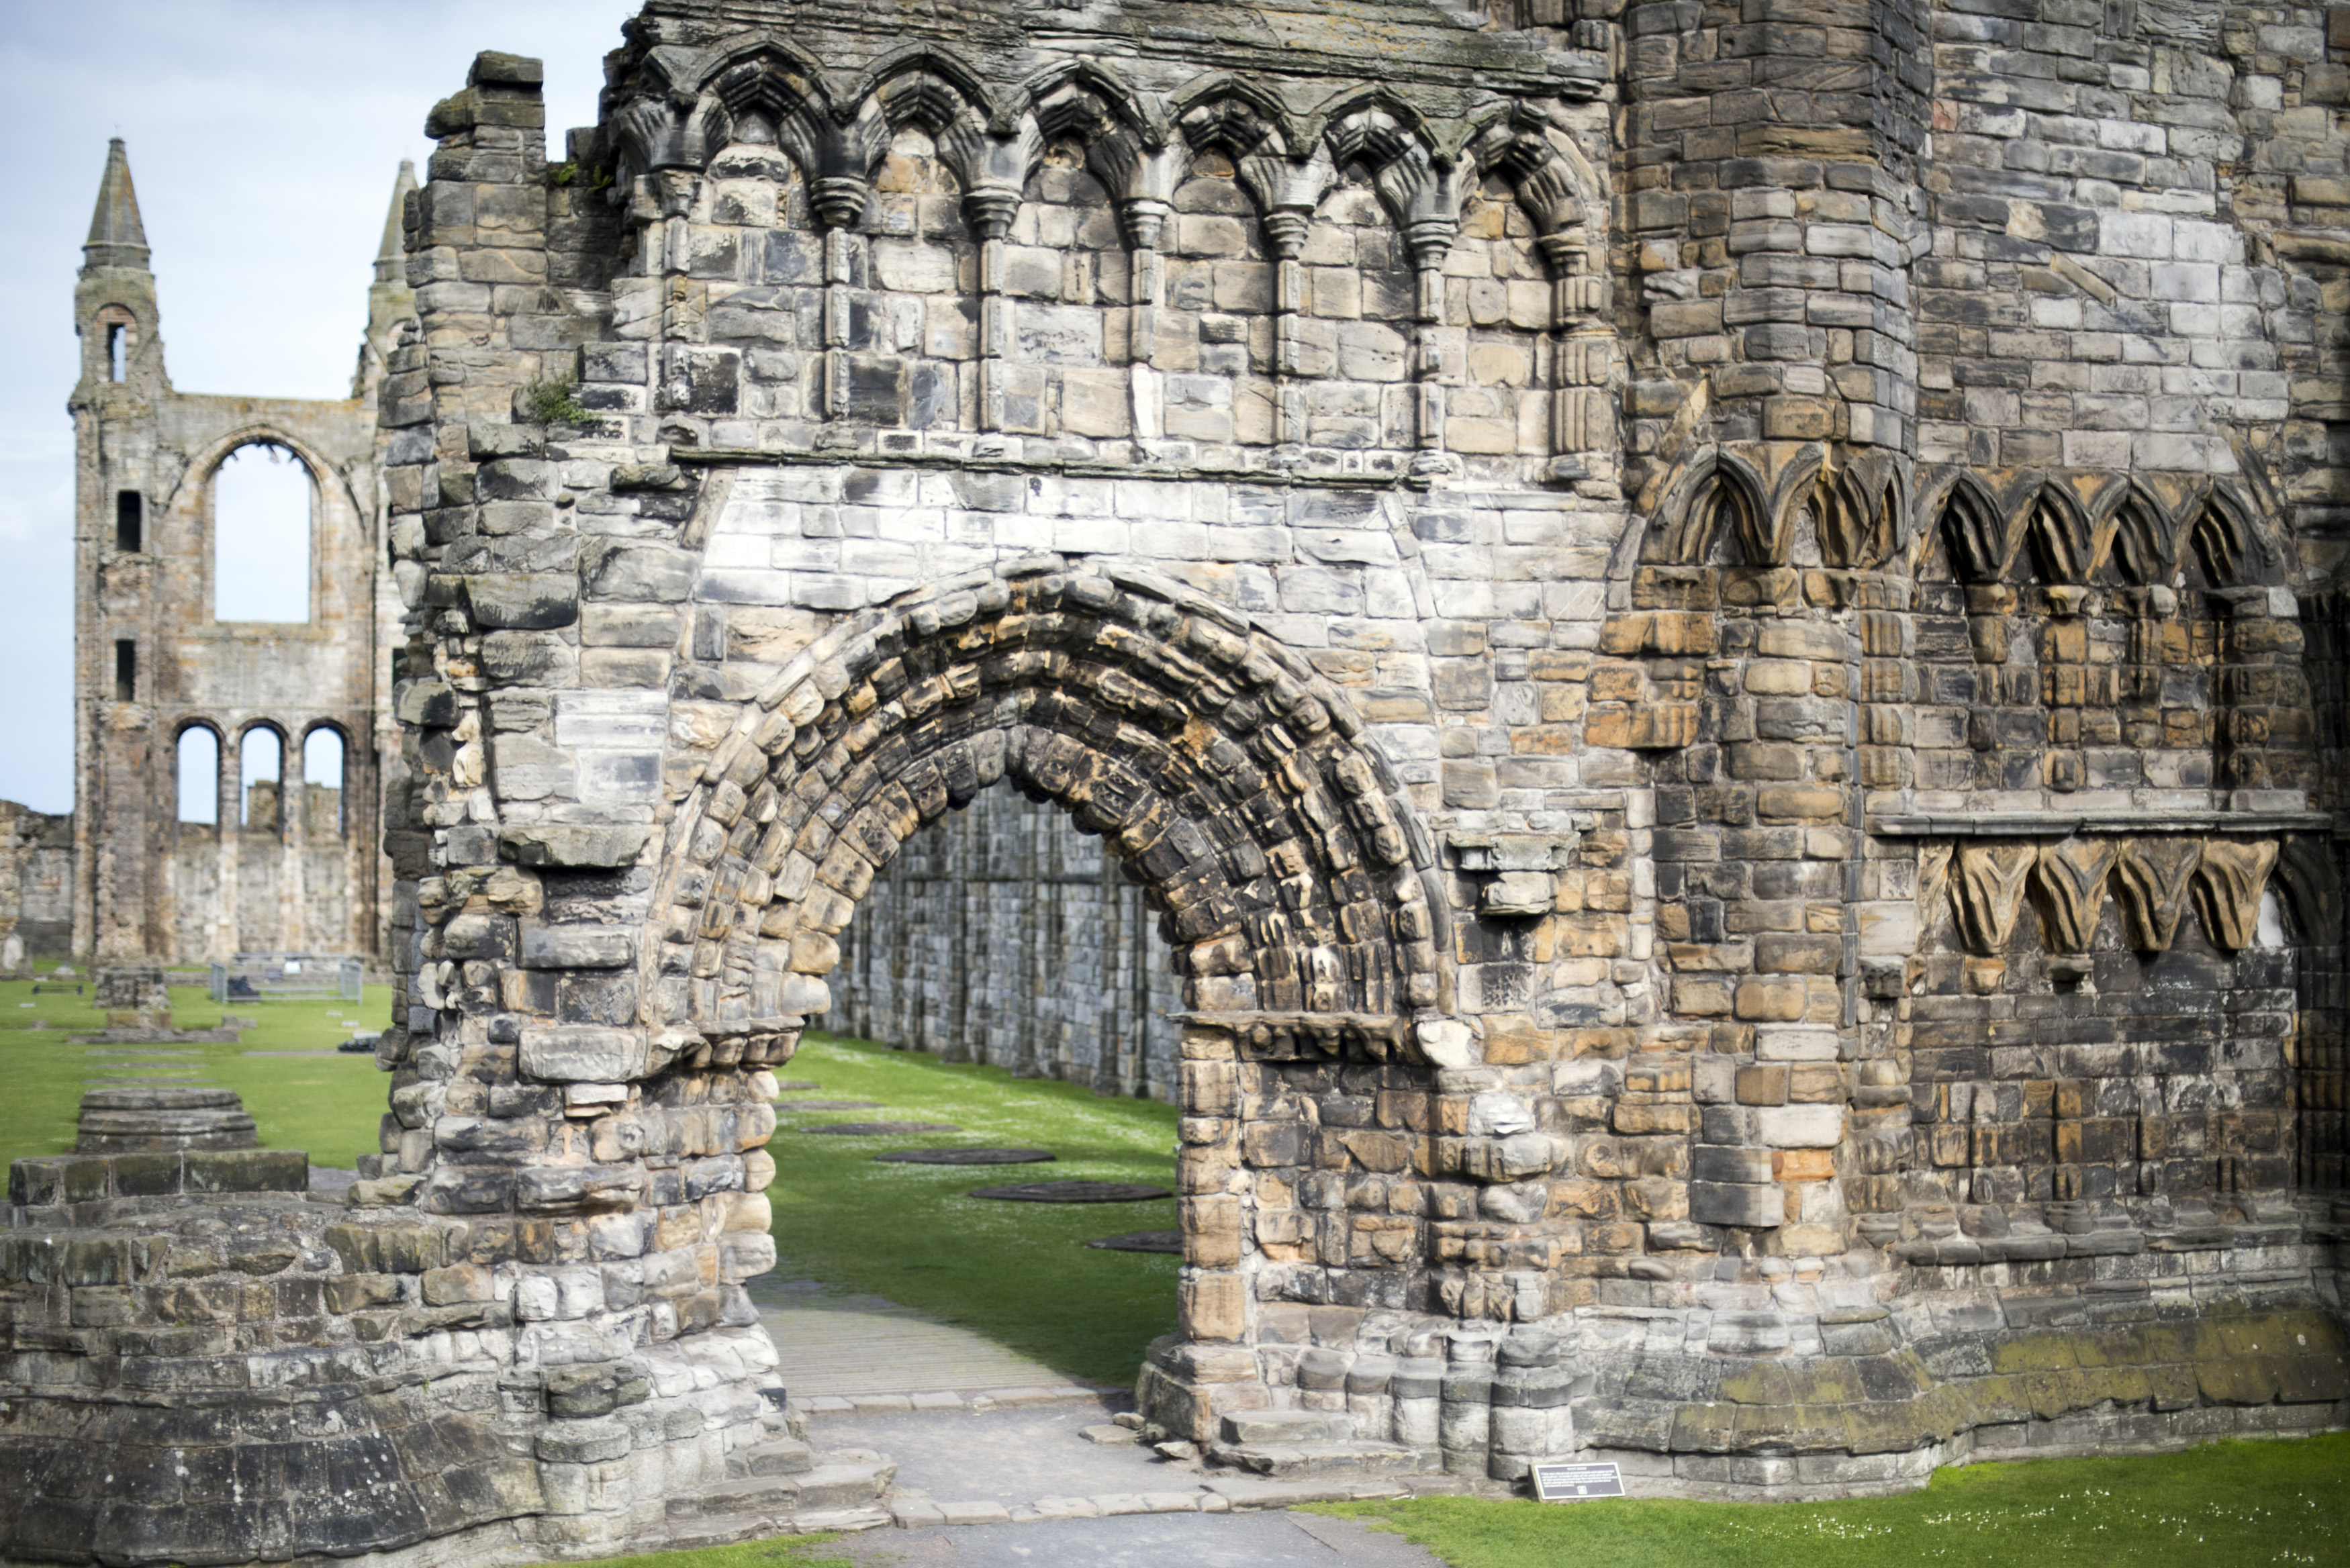 View on front facade of Saint Andrews cathedral with early English type gothic arch and weathered bricks